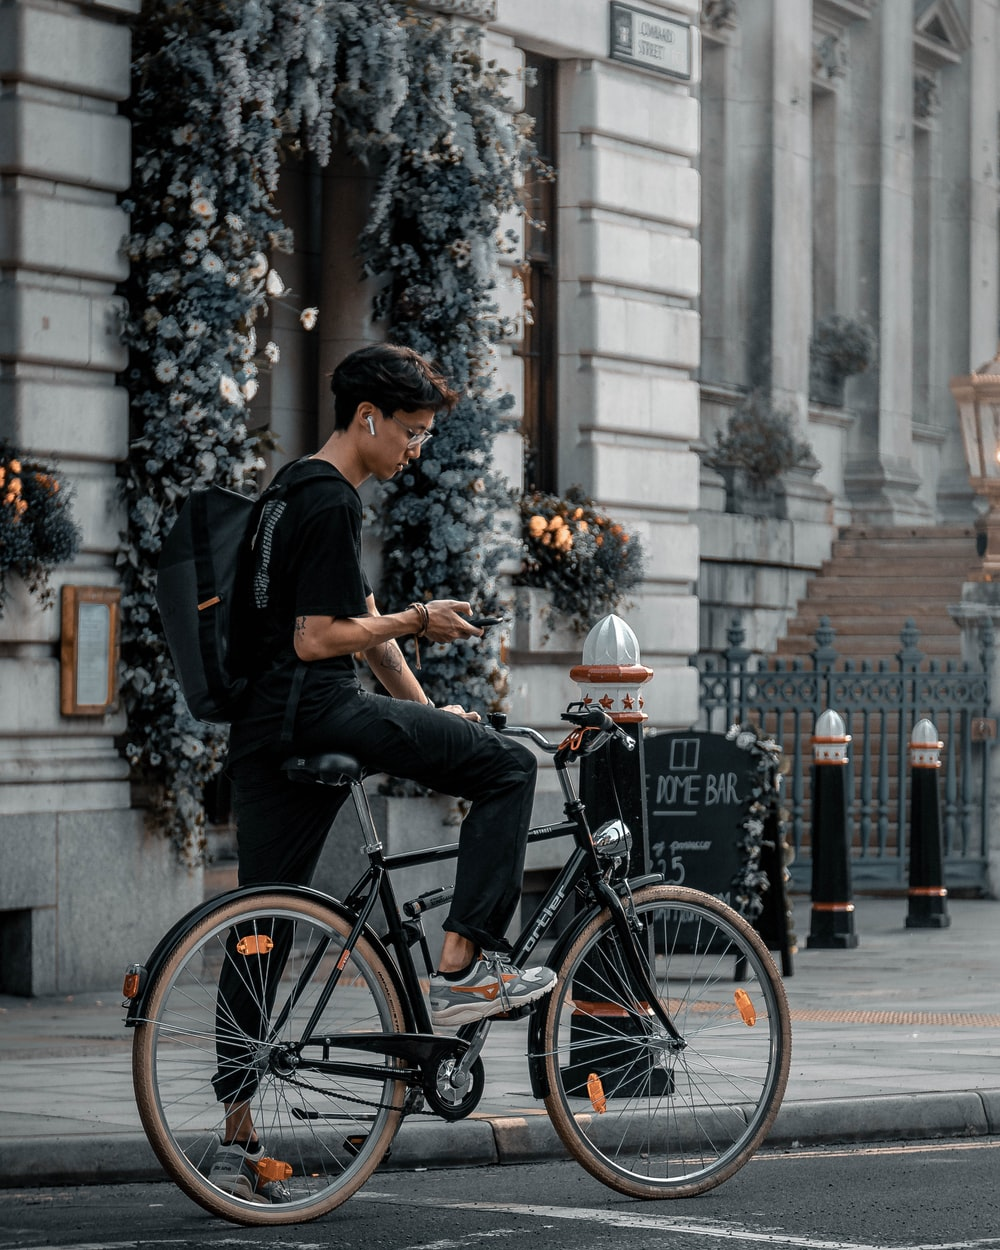 man in black t-shirt and black cap riding on black city bicycle